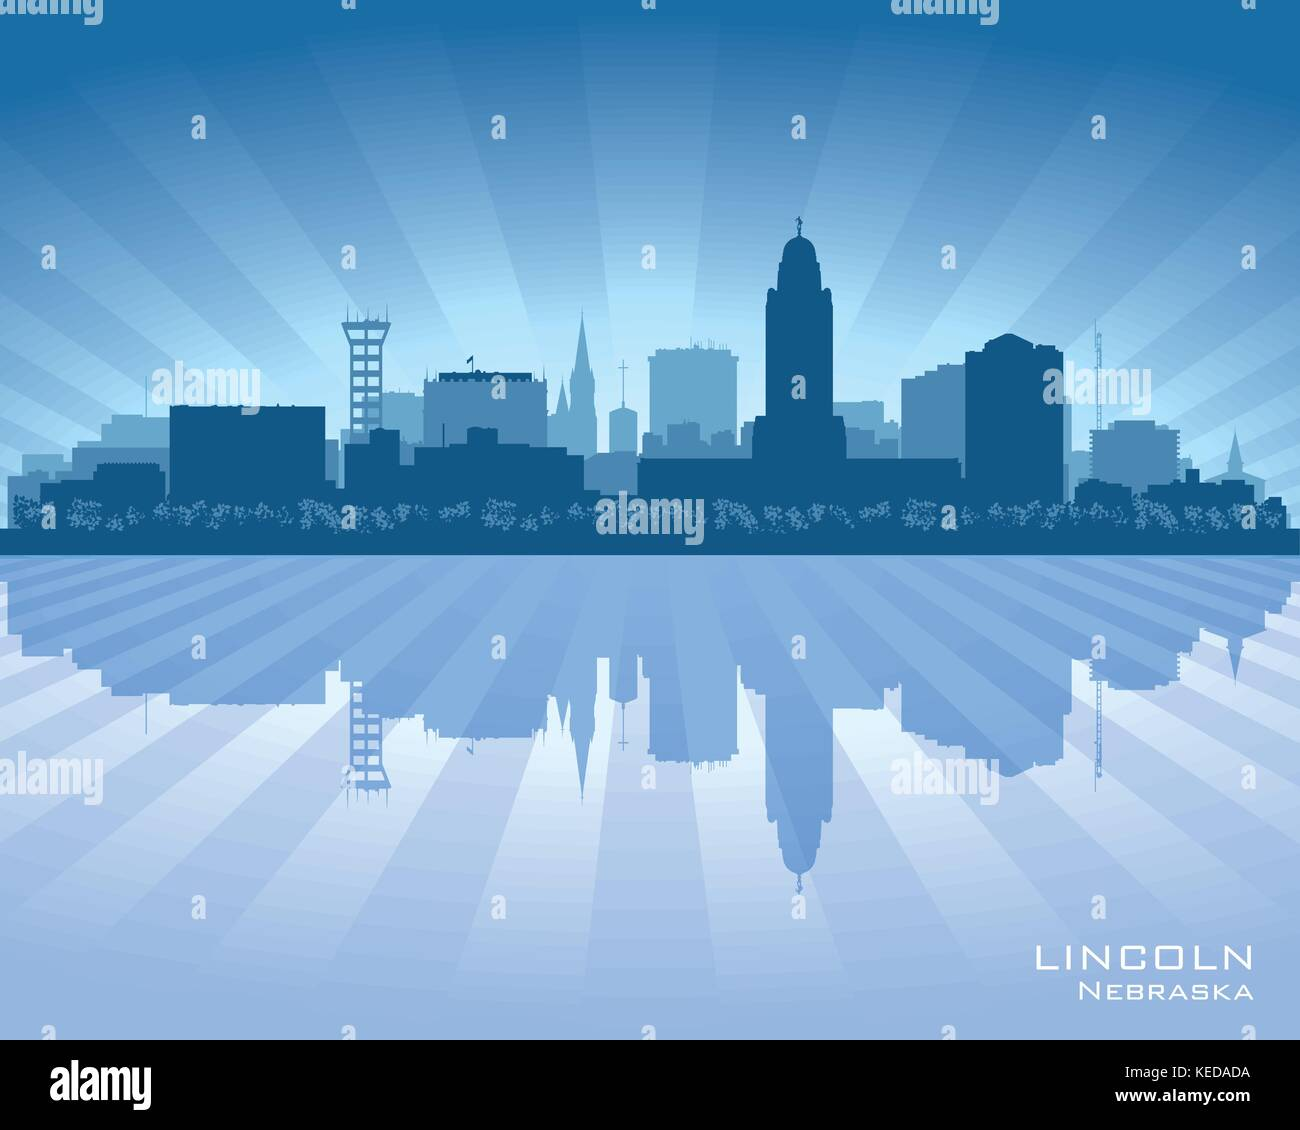 Lincoln Nebraska City Stock Photos Amp Lincoln Nebraska City